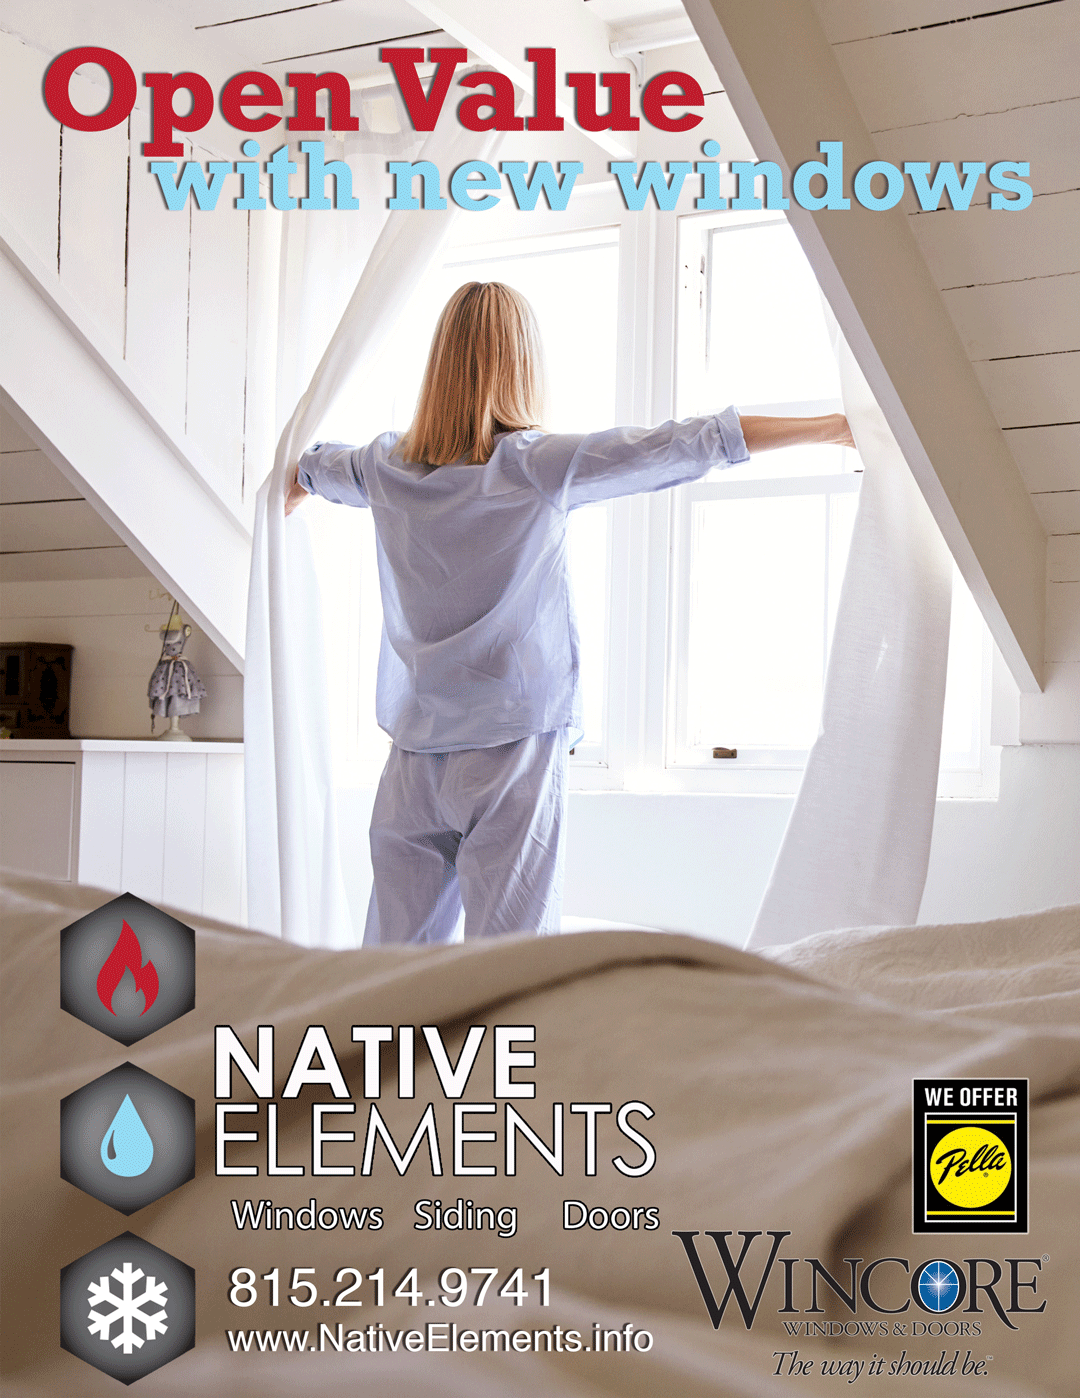 Native Elements   They found us when they started up this company. We helped them build their brand, identify their name, message, voice, look, and create a game plan together to help them quickly and efficiently grown their business.    Services provided:    Brand Concepting: Name, Logo Creation, Voice, Look  Essential Digital Fundamentals (Created & Set Up): Website, Google Business, Facebook, Instagram  Trade Shows: Signage Designed and Printed, Branded Tablecloths, Promotional Items and Giveaways  On Going Marketing Help: Design Ads, Fliers, Door Hangers and consult on marketing strategies.